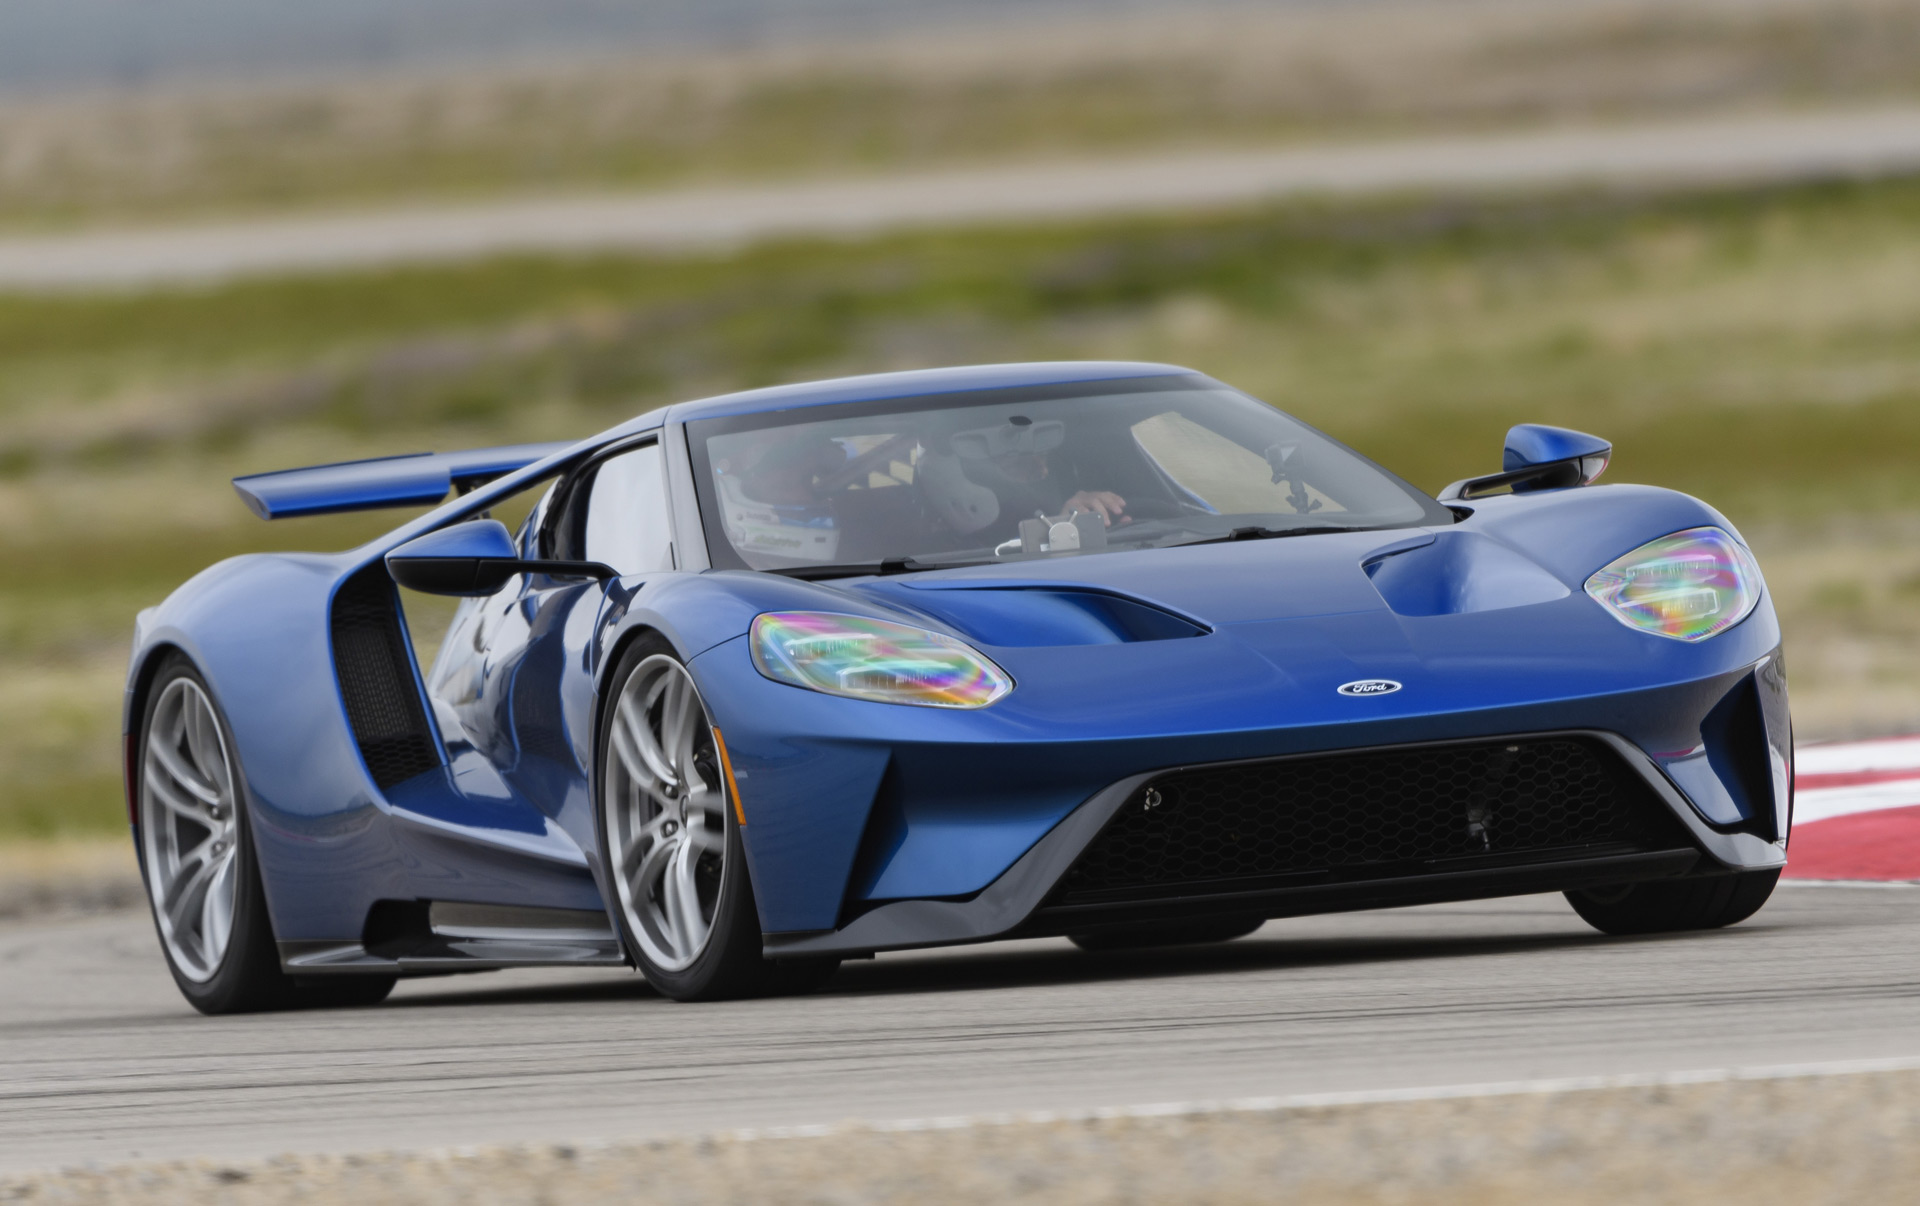 2017 ford gt first drive review ready for supercar liftoff. Black Bedroom Furniture Sets. Home Design Ideas